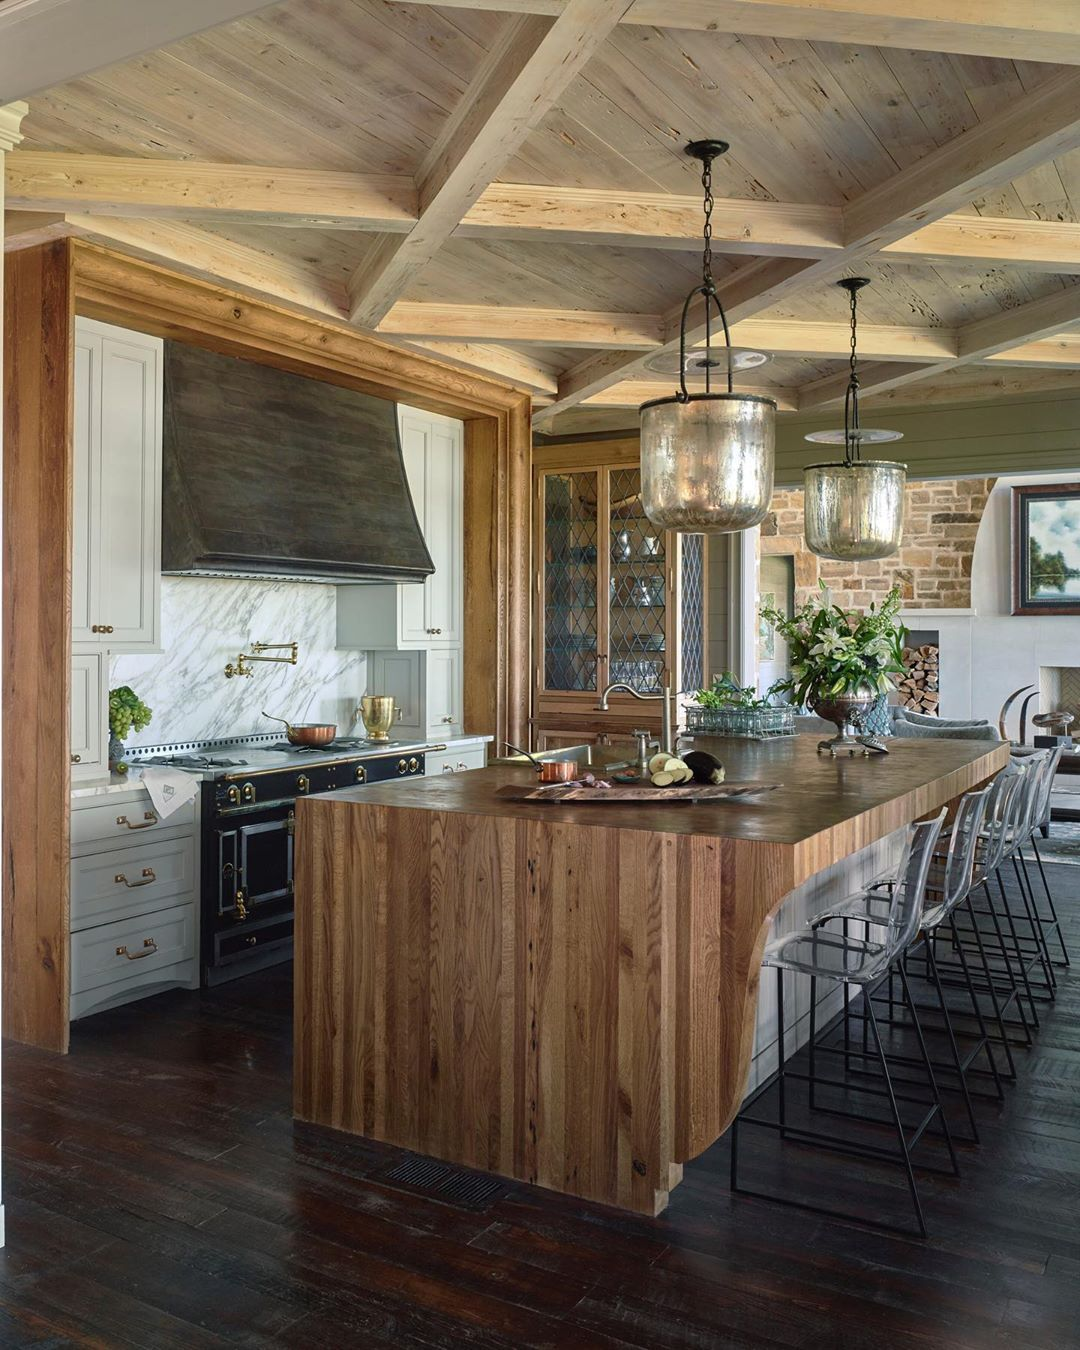 Francis Bryant Construction On Instagram What S Not To Love About This Kitchen From The Pecky Cypress Ceiling To In 2020 Pecky Cypress Kitchen Custom Butcher Block